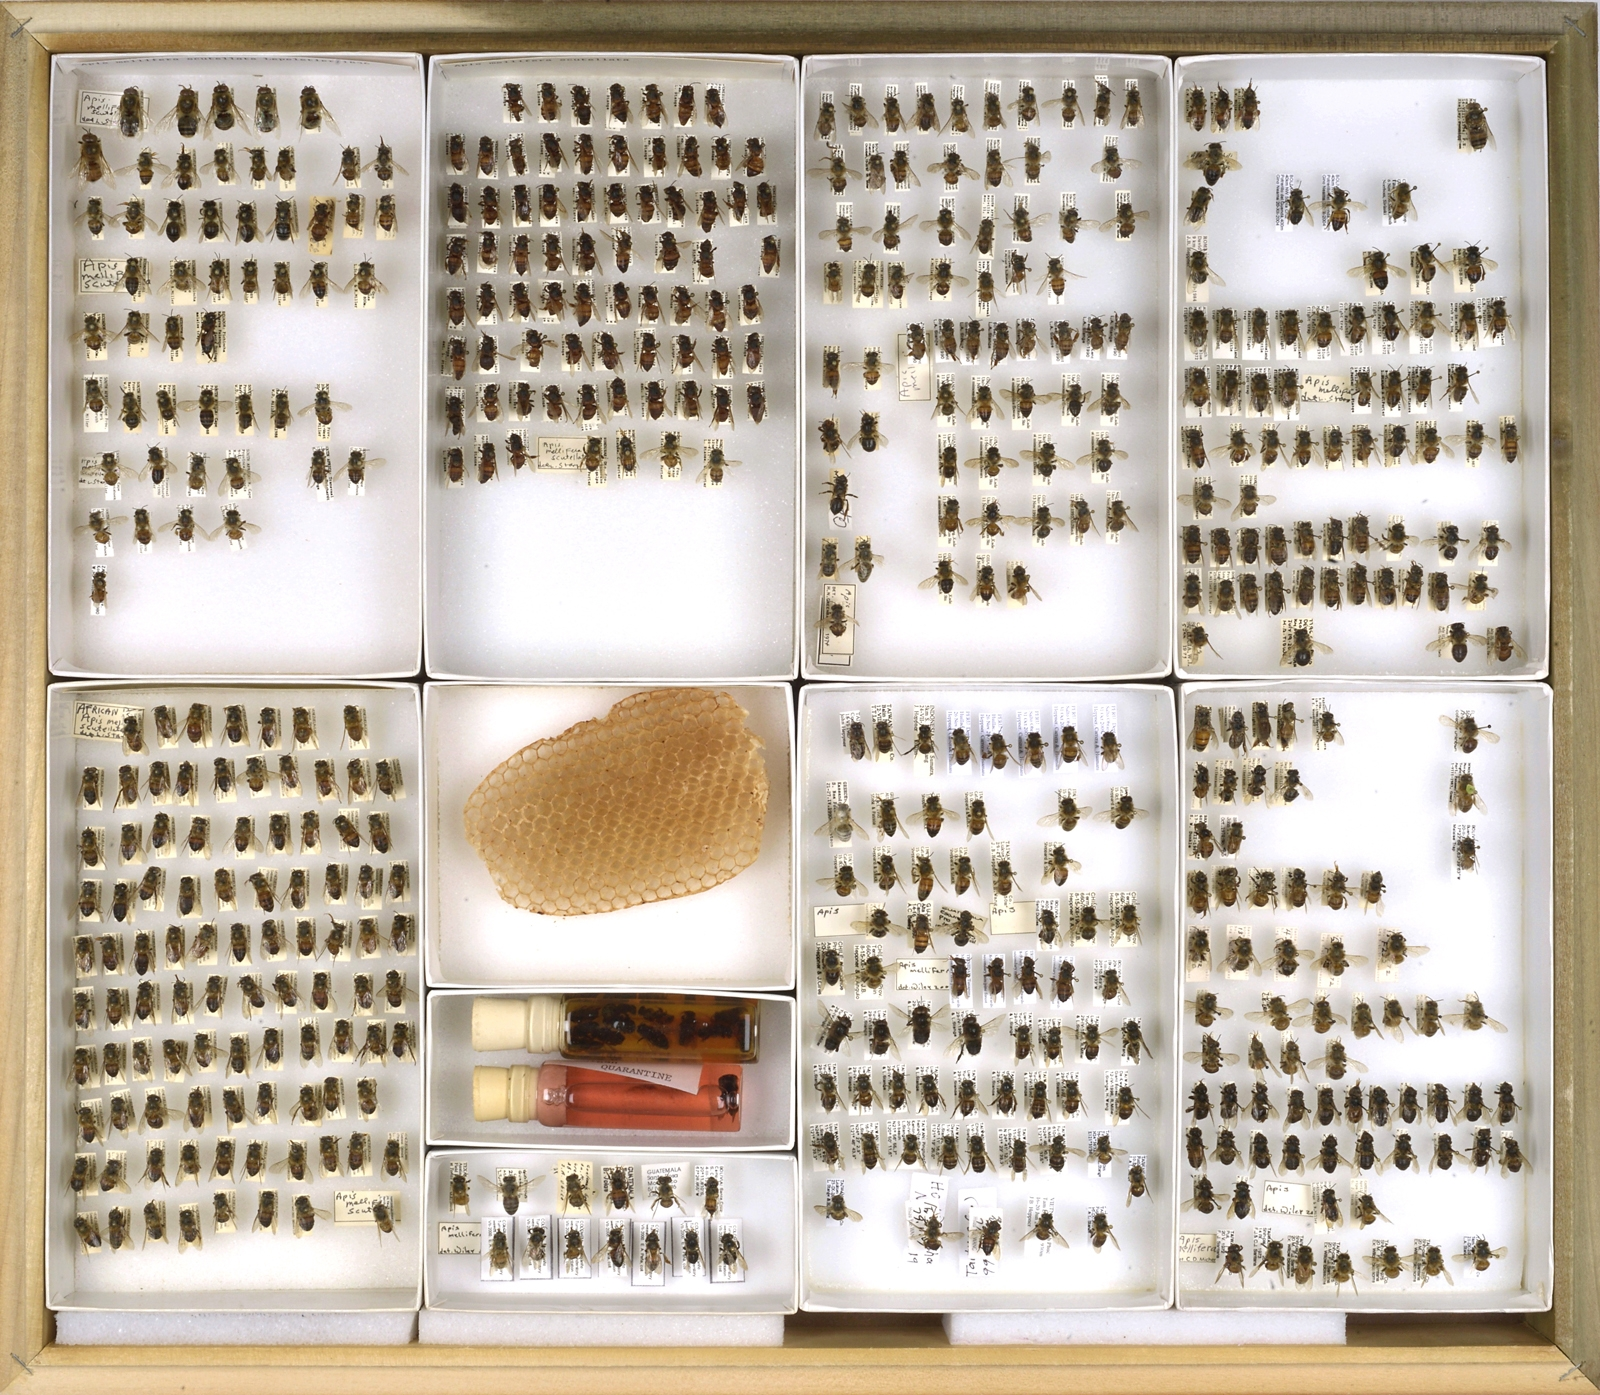 1_Rogers_Bee_Collection_Apis-mellifera-Scutellata_Africanized Bees_Lgr.jpg